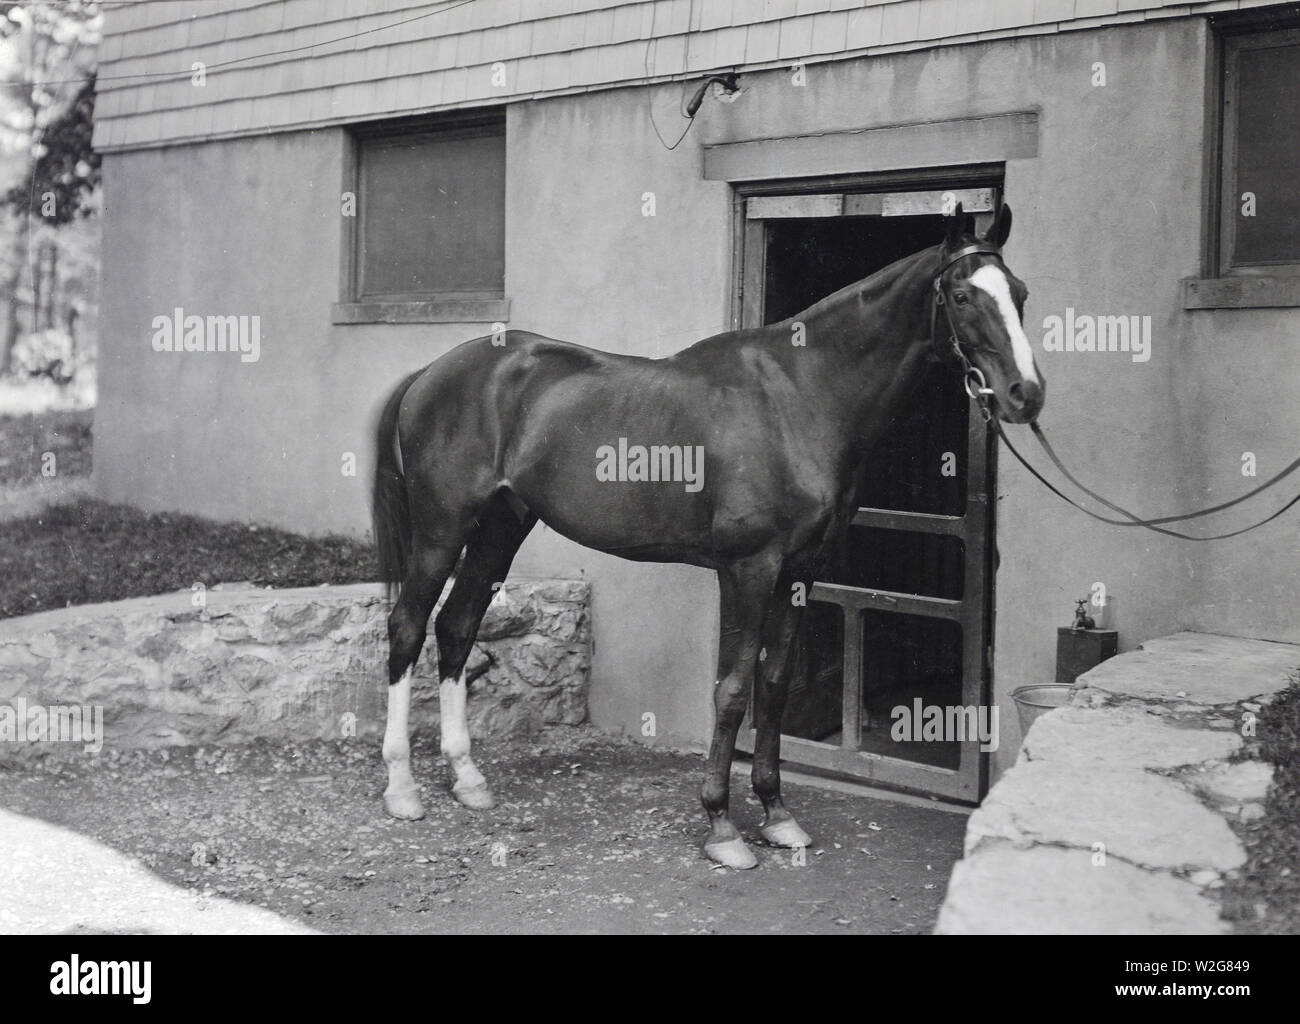 Kidron (French gelding) was selected for United States Government by Colonel John G. Quekemeyer, A.D.C. to General John J. Pershing, and later was purchased from the United States Government for General John J. Pershing. Ridden in the Paris Peace Parade by General John J. Pershing. Returned to the United States with G.H.Q. Stables, September 1919 - Stock Image